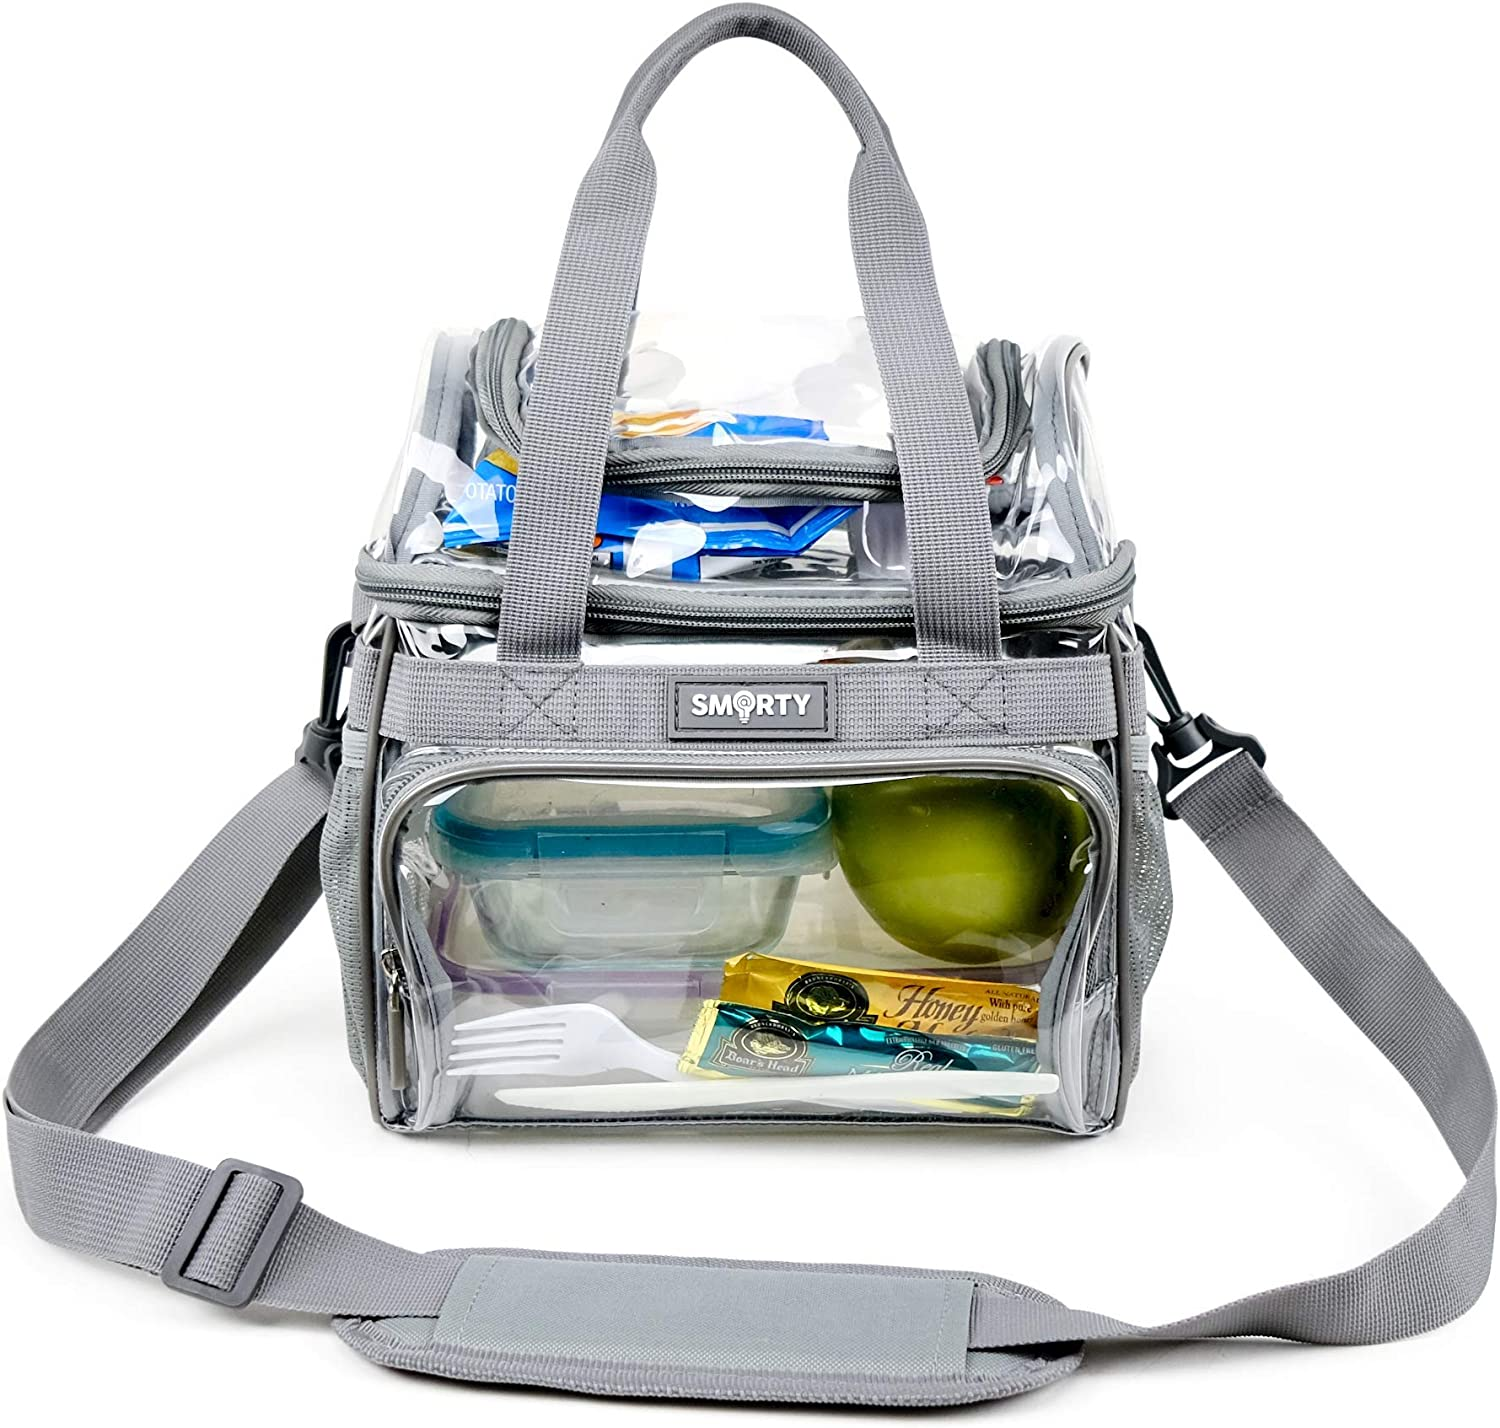 Medium Heavy Duty Clear Lunch Tote Stadium Bag Event Approved Diaper Travel Makeup Cosmetic Bag for NFL Football NCAA Basketball PGA NASCAR Concerts Correctional Officers (Gray, 10 x 9.5 x 6)